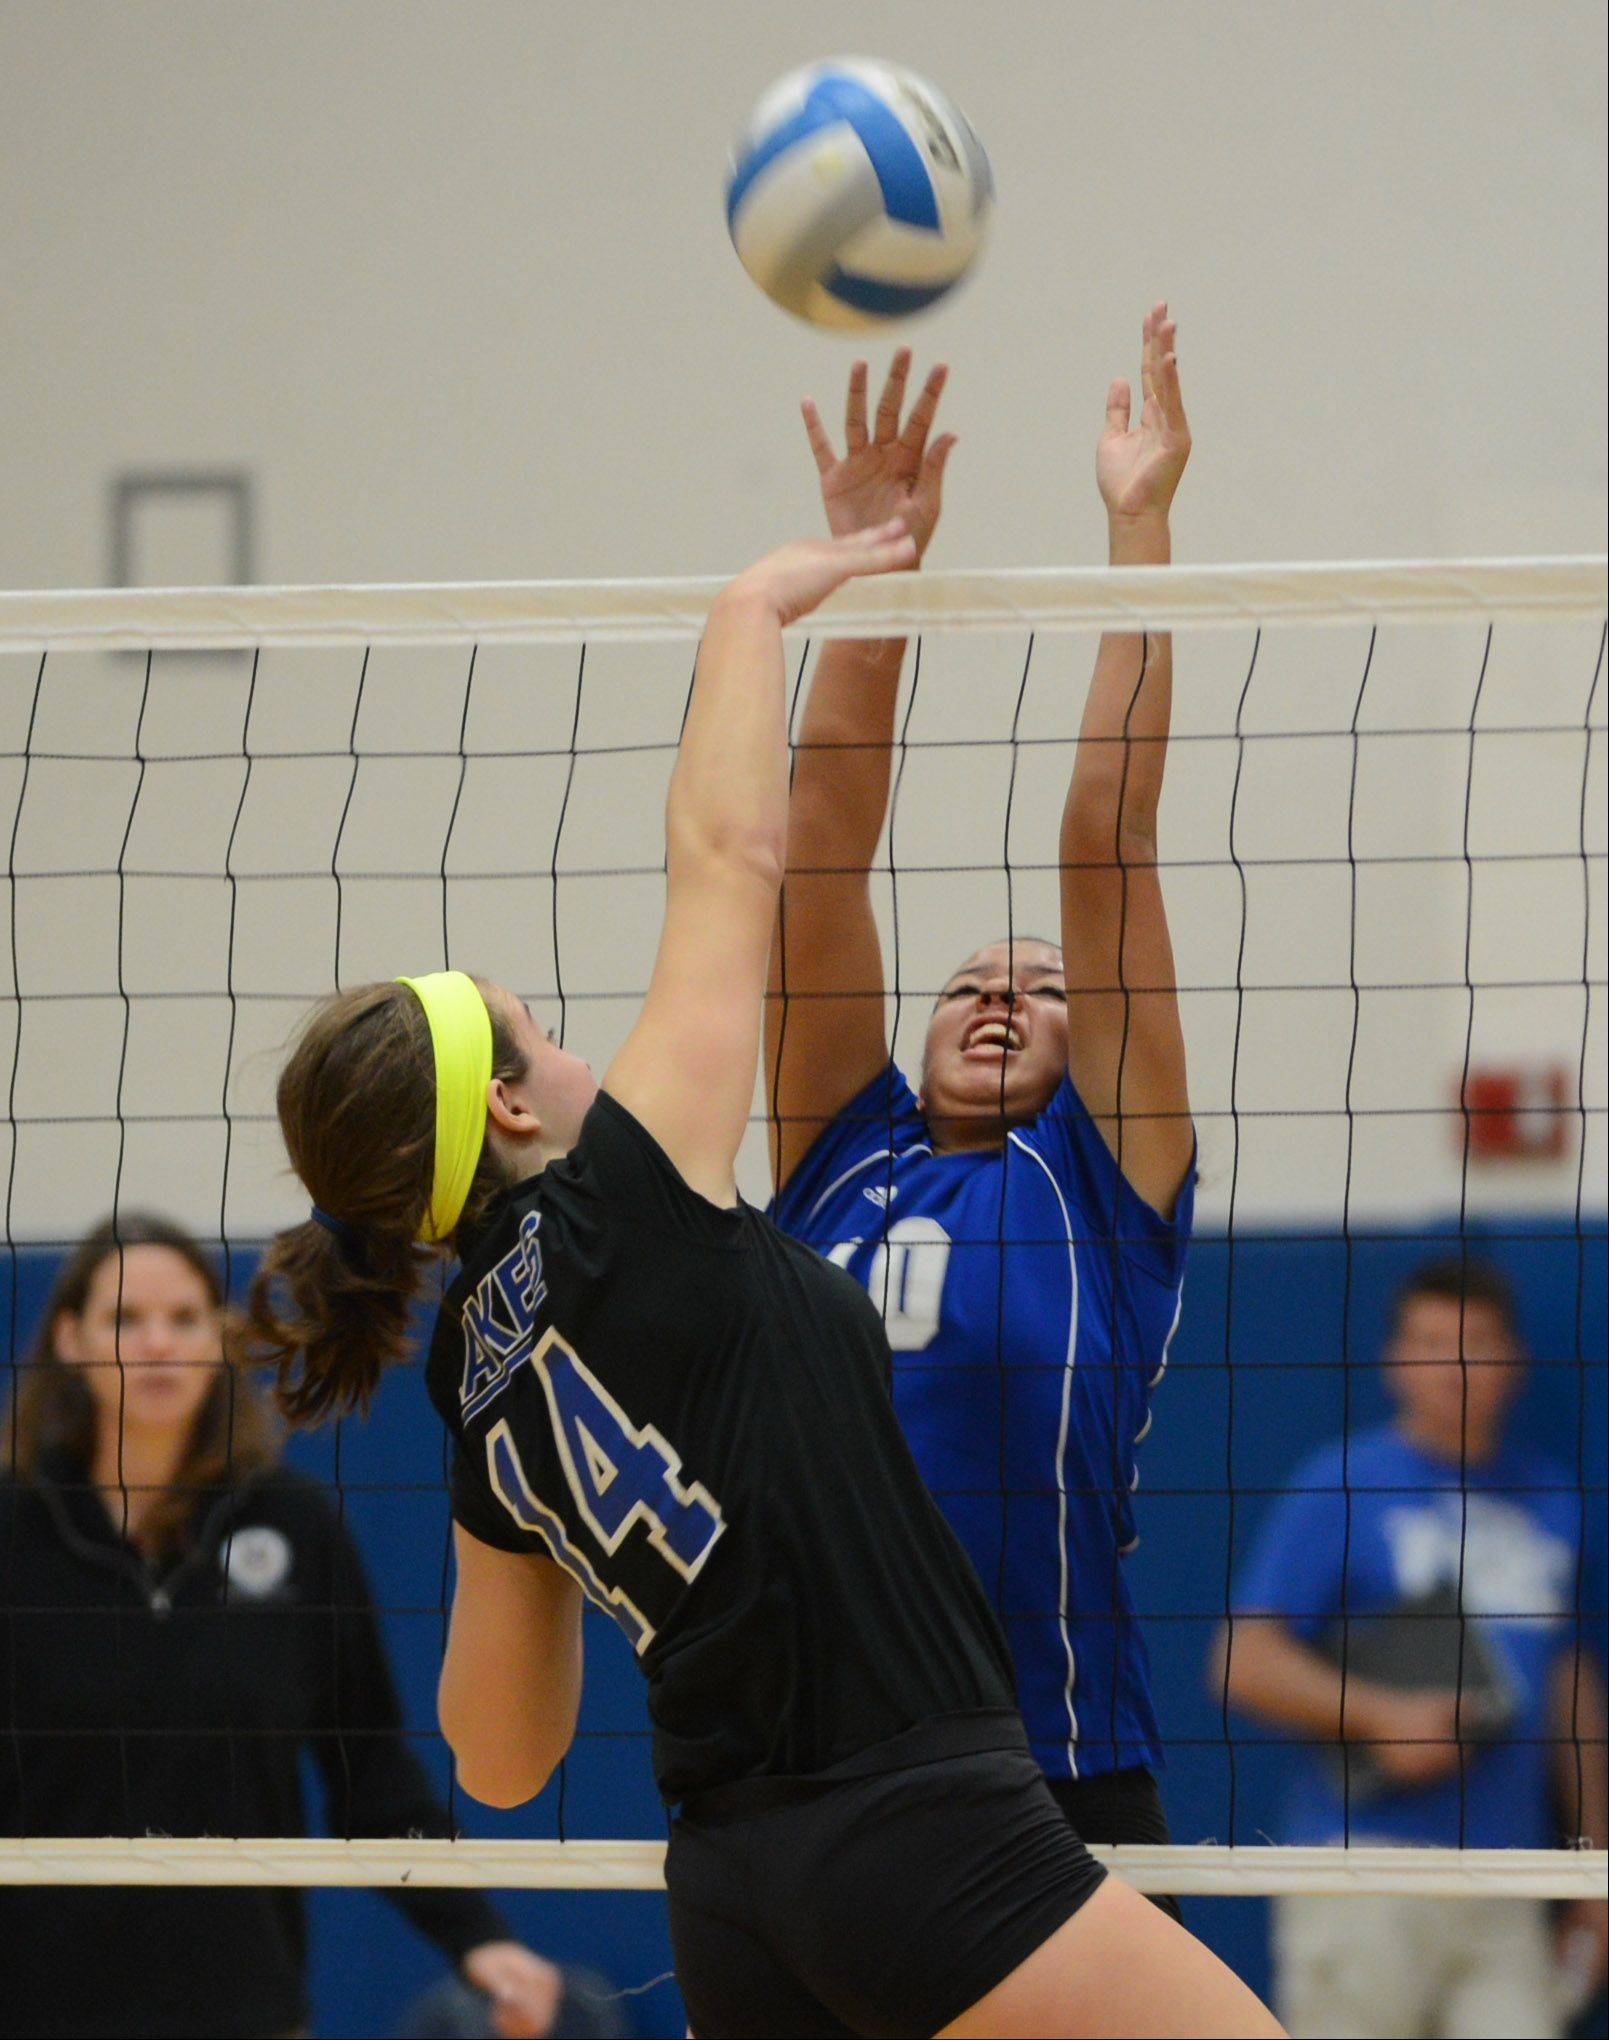 Lakes' Megan Behrendt (14) knocks the ball past Vernon Hills' Tori Smith during Wednesday night's volleyball game in Vernon Hills.